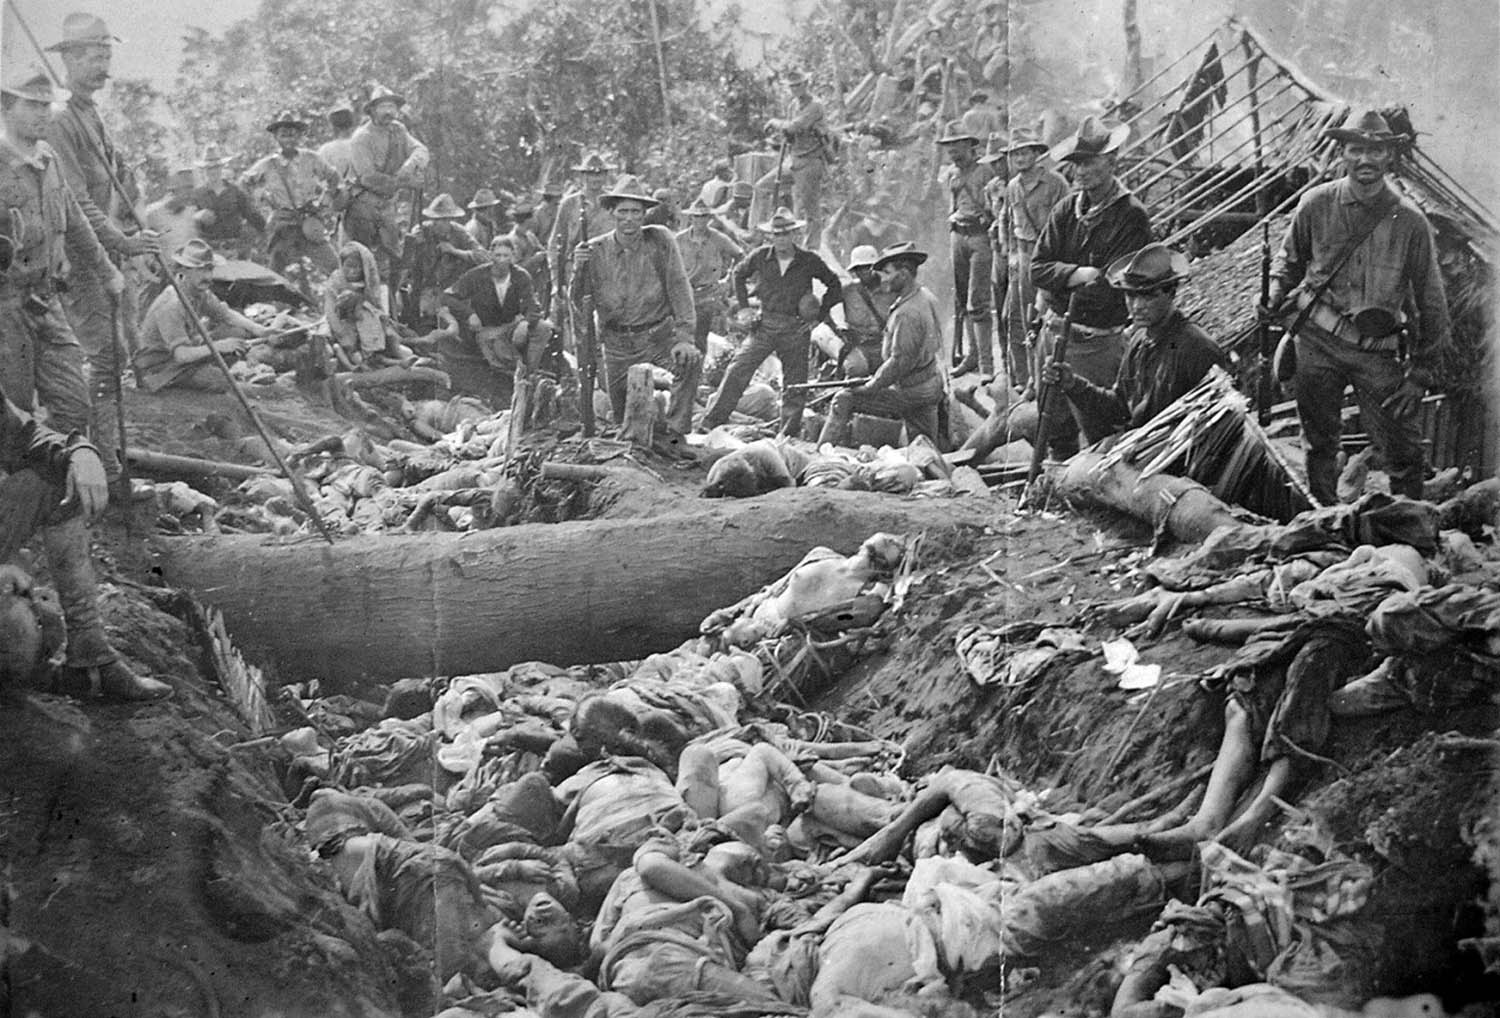 US Soldiers pose with Filipino Moro dead after the First Battle of Bud Dajo, March 7, 1906, Jolo, Philippines.